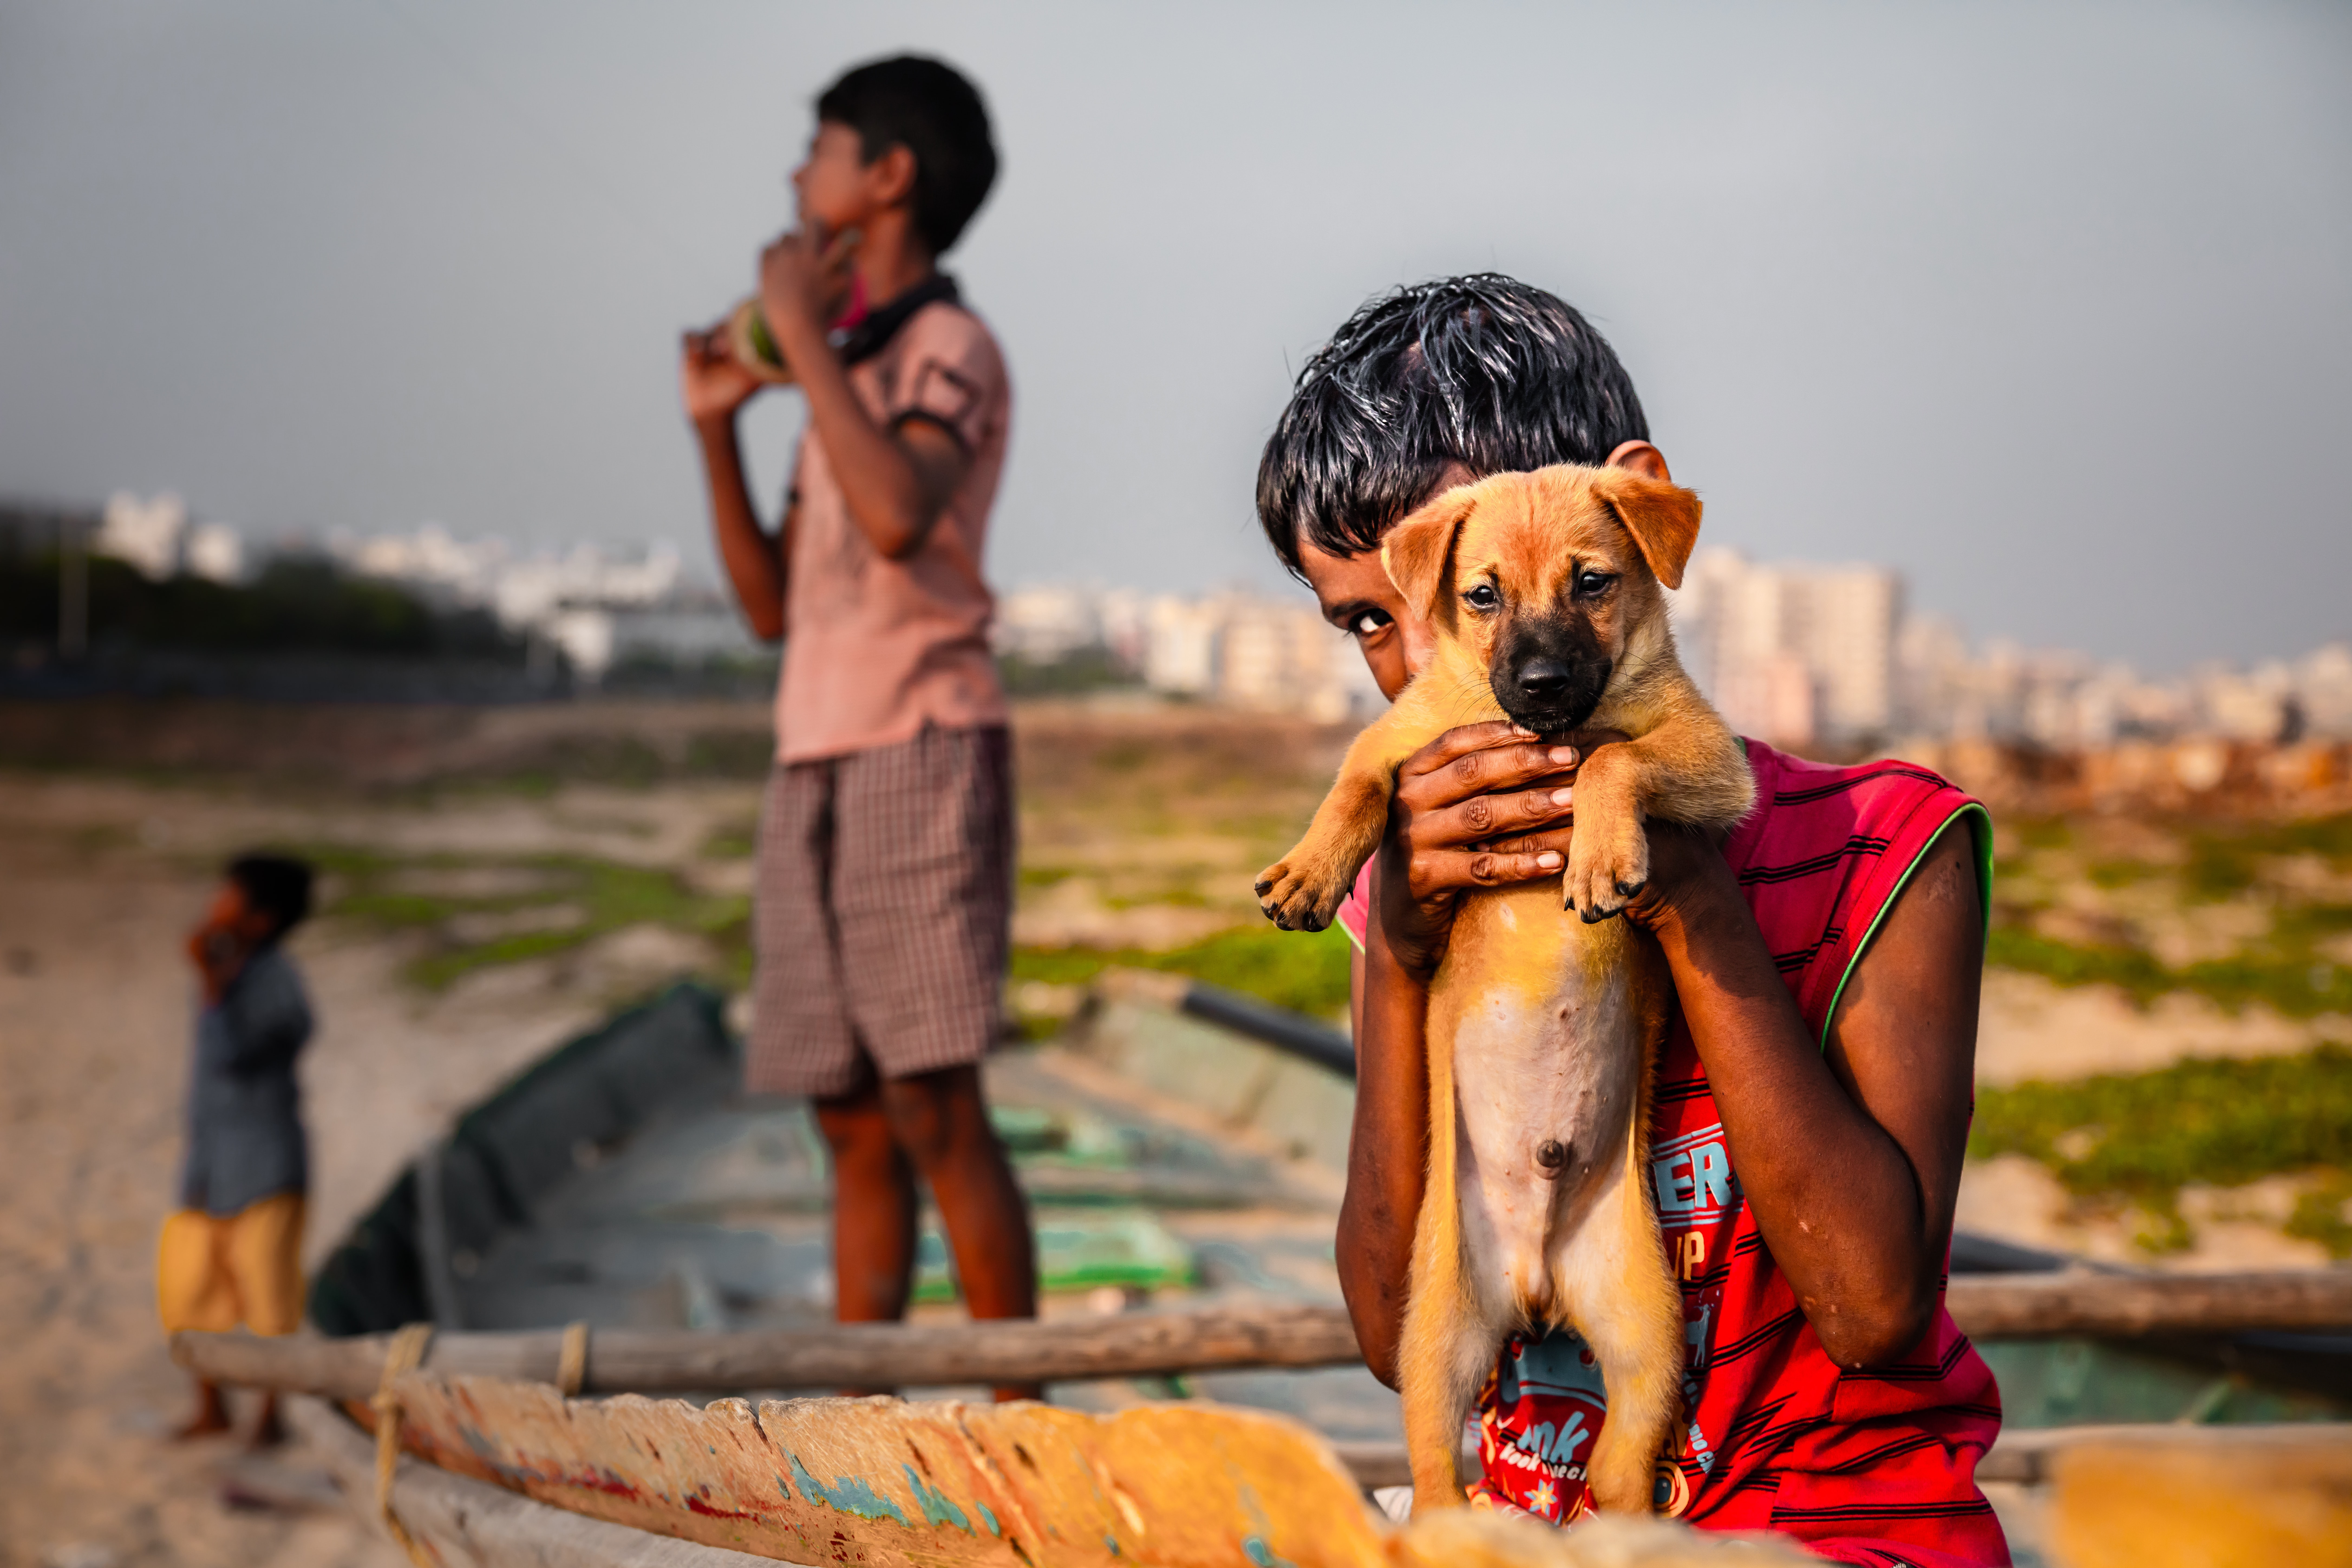 boy in red sleeveless shirt holding brown short-coated puppy